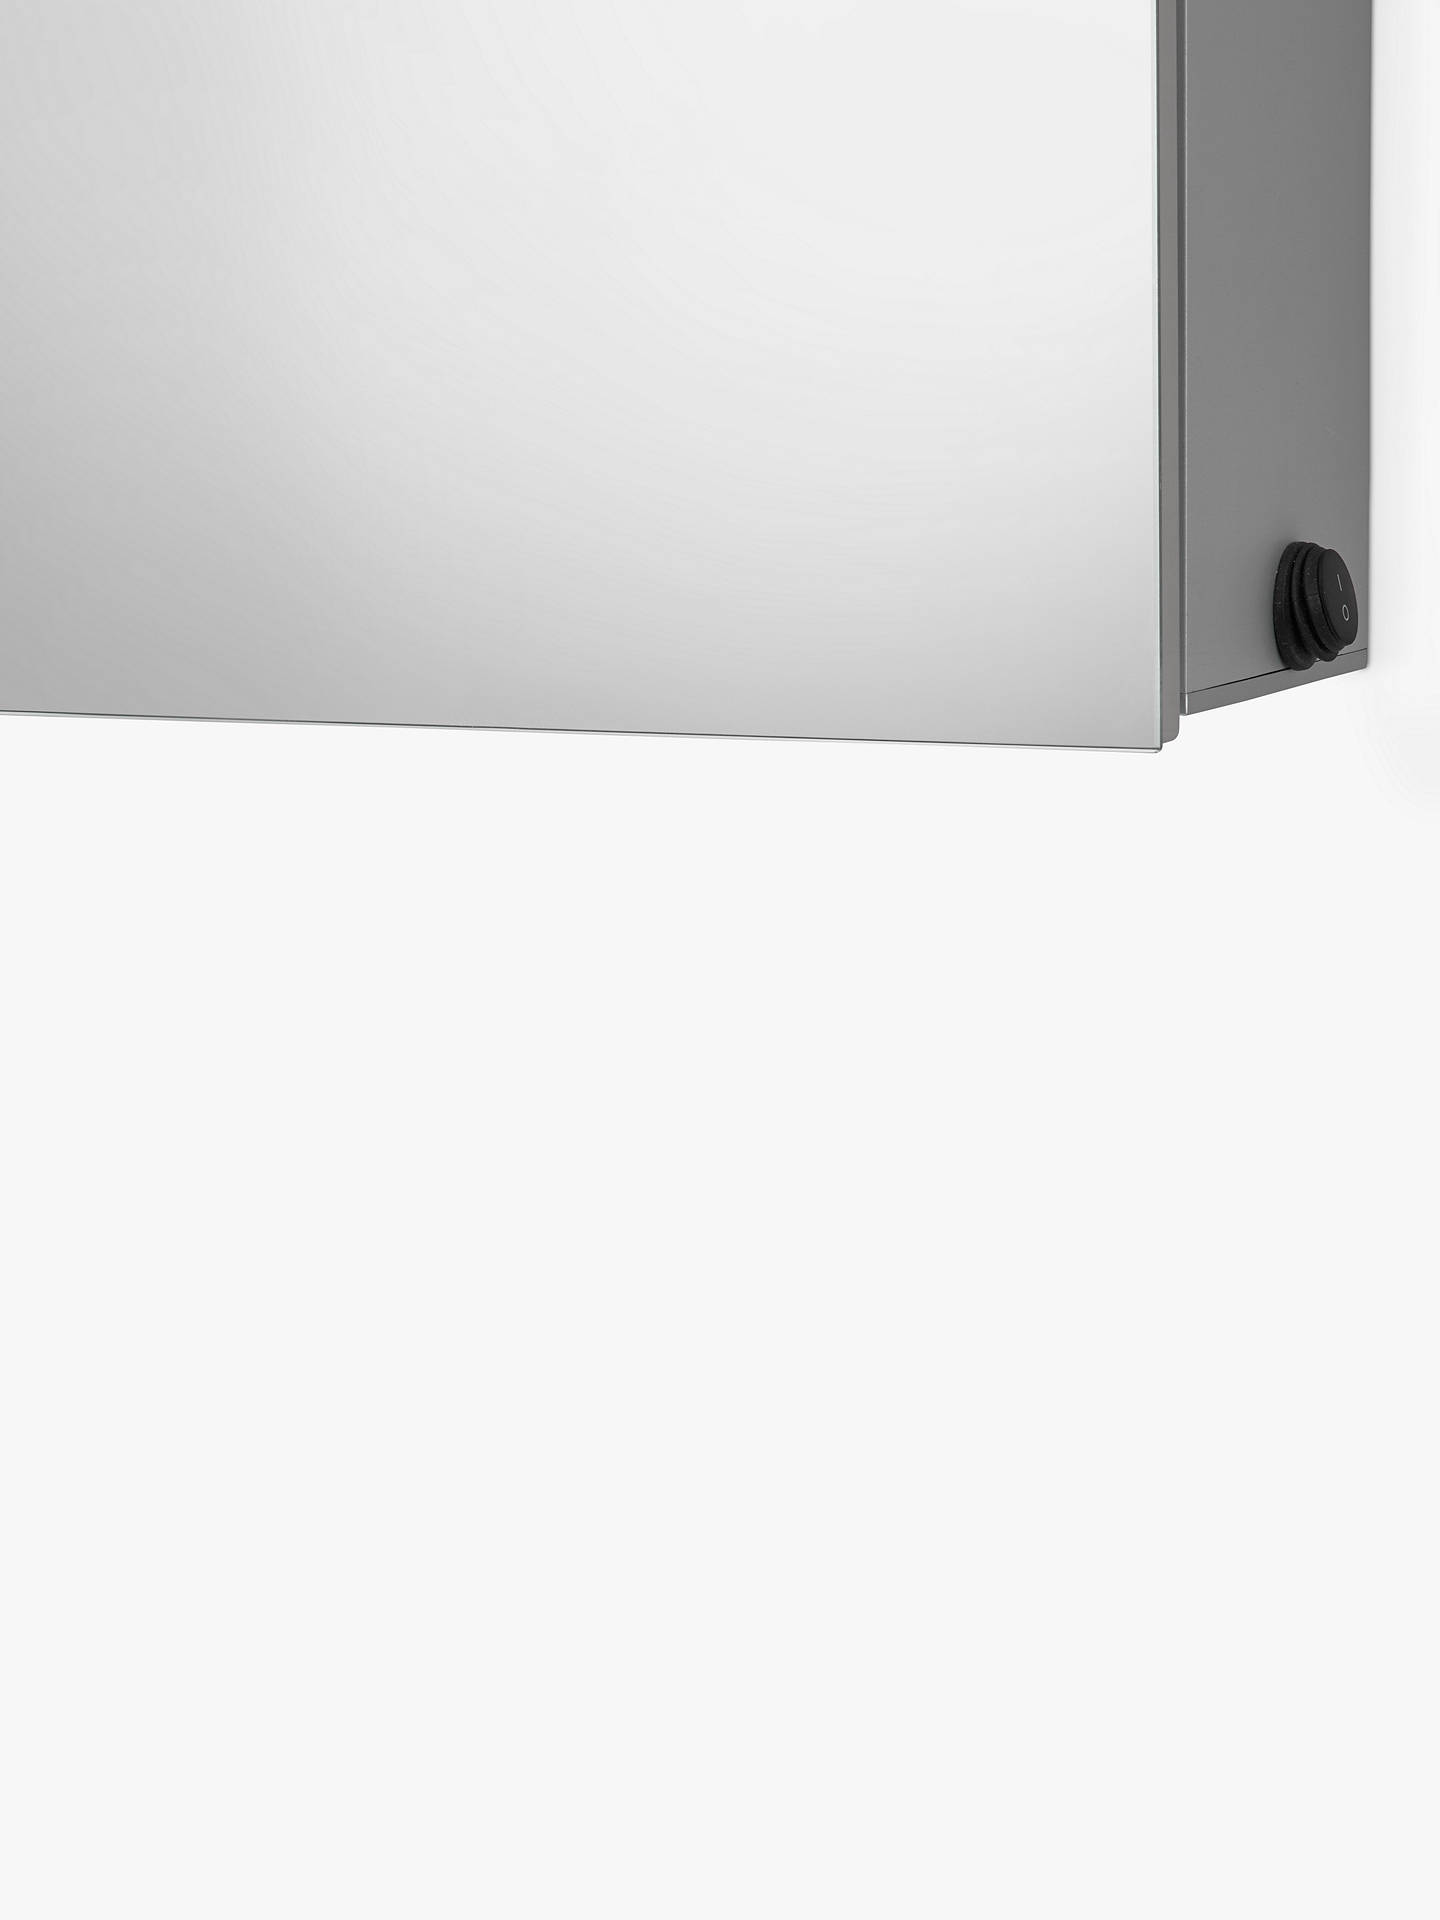 Buy John Lewis & Partners Debut Double Mirrored and Illuminated Bathroom Cabinet Online at johnlewis.com